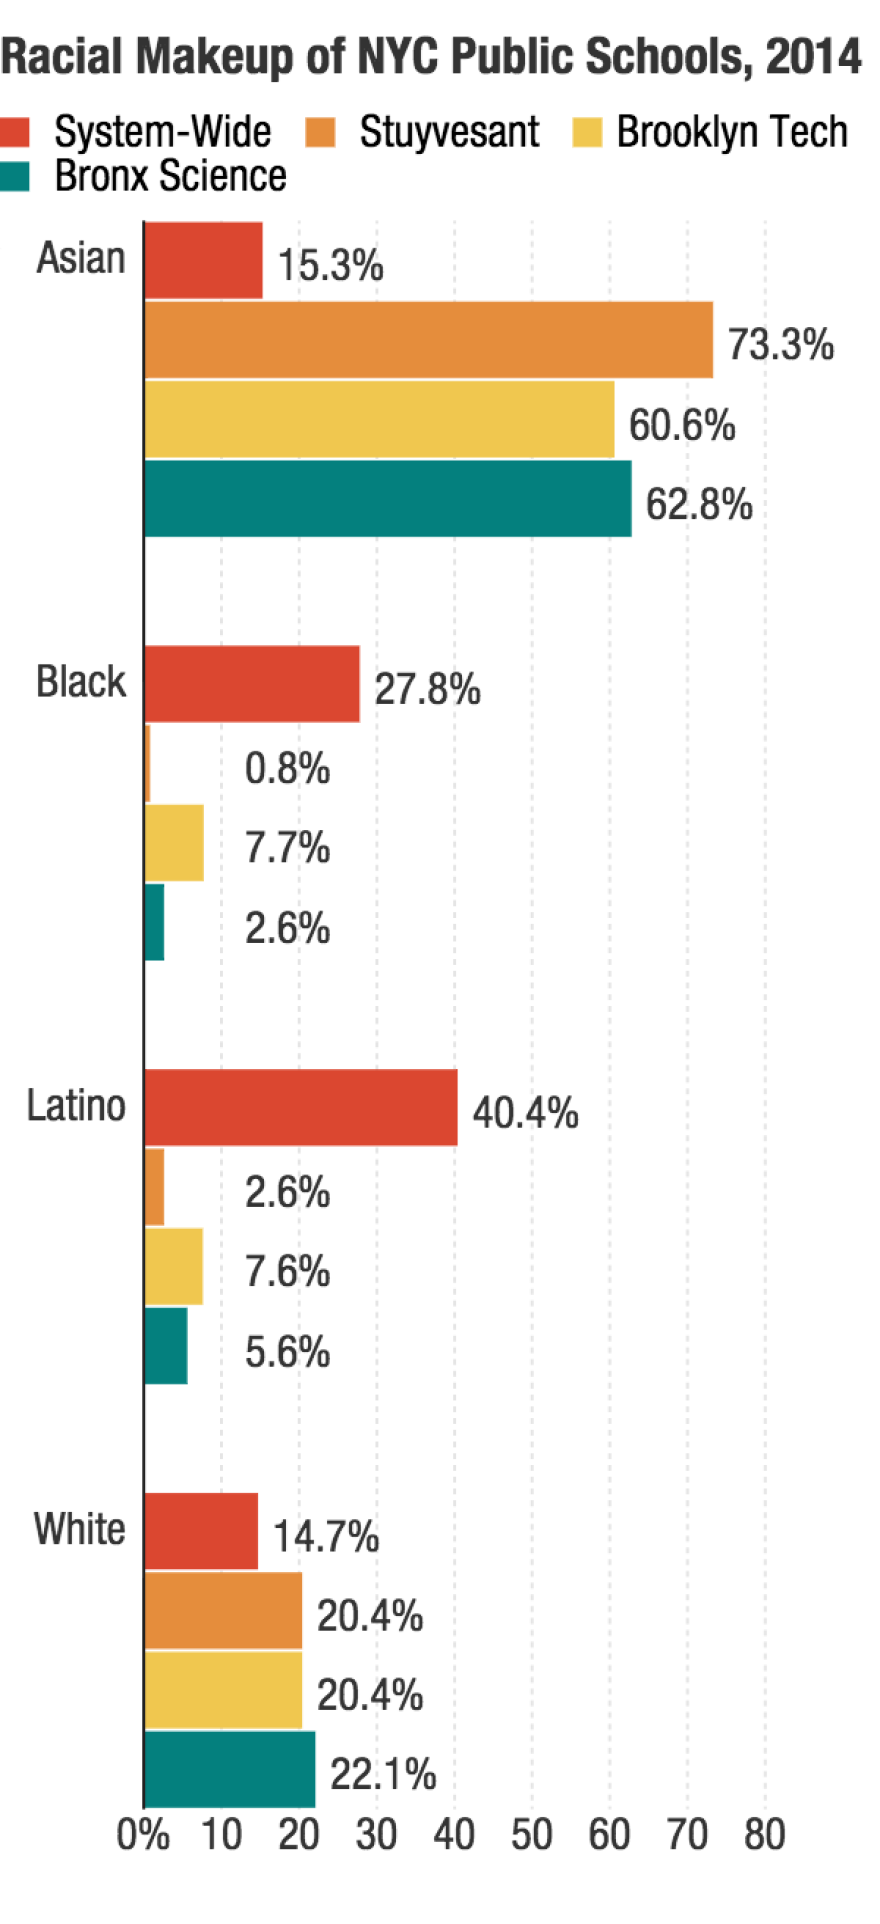 Black and Latino students make up around 70 percent of the student population of New York City's public schools, but makeup a tiny percentage at the city's three elite specialized high schools.